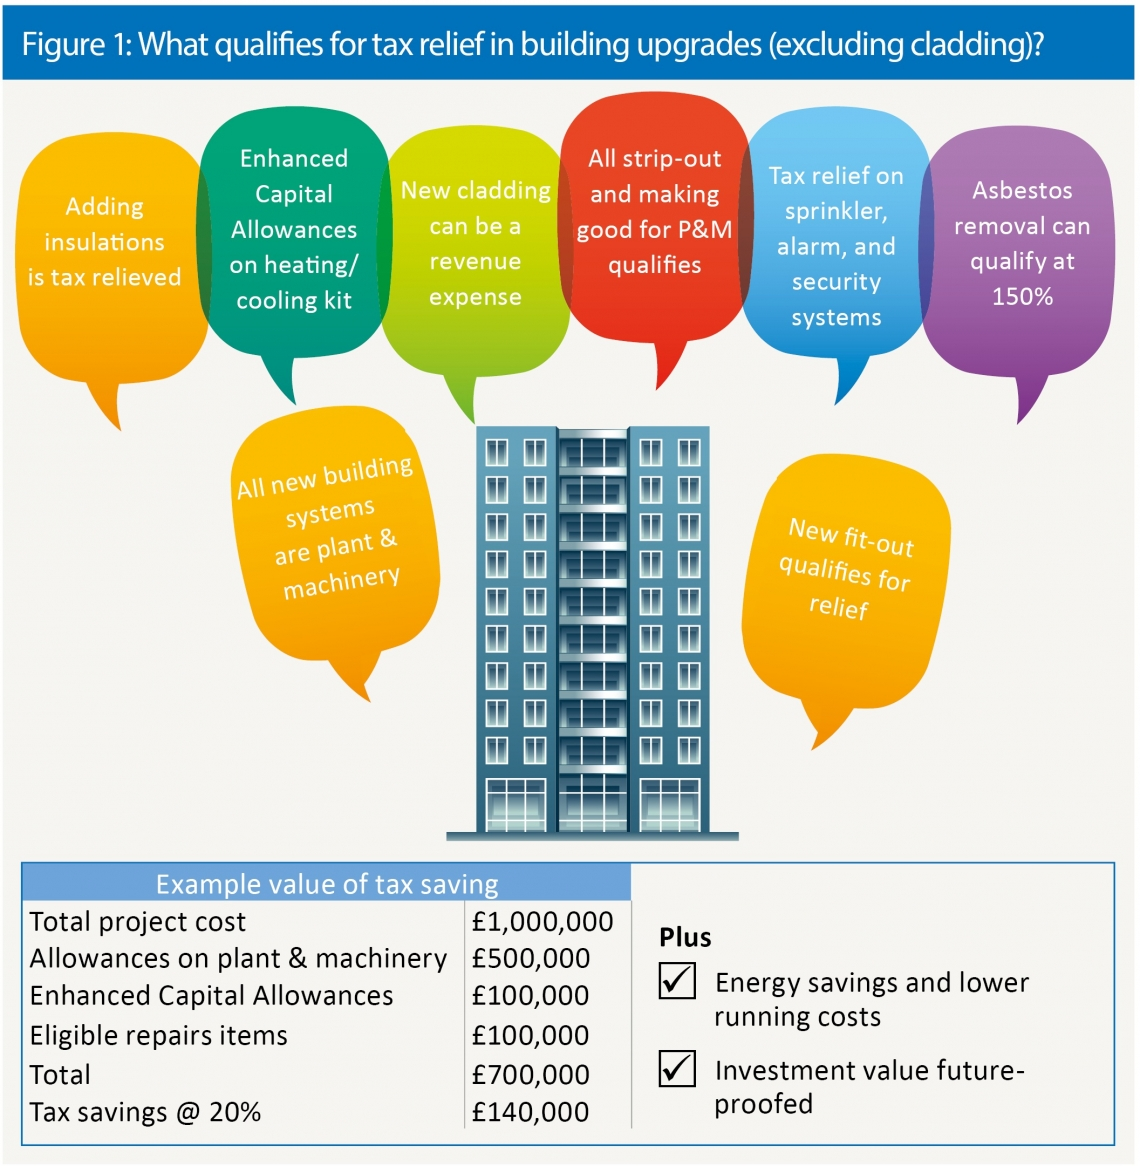 What qualifies for tax relief in building upgrades (excluding cladding)?